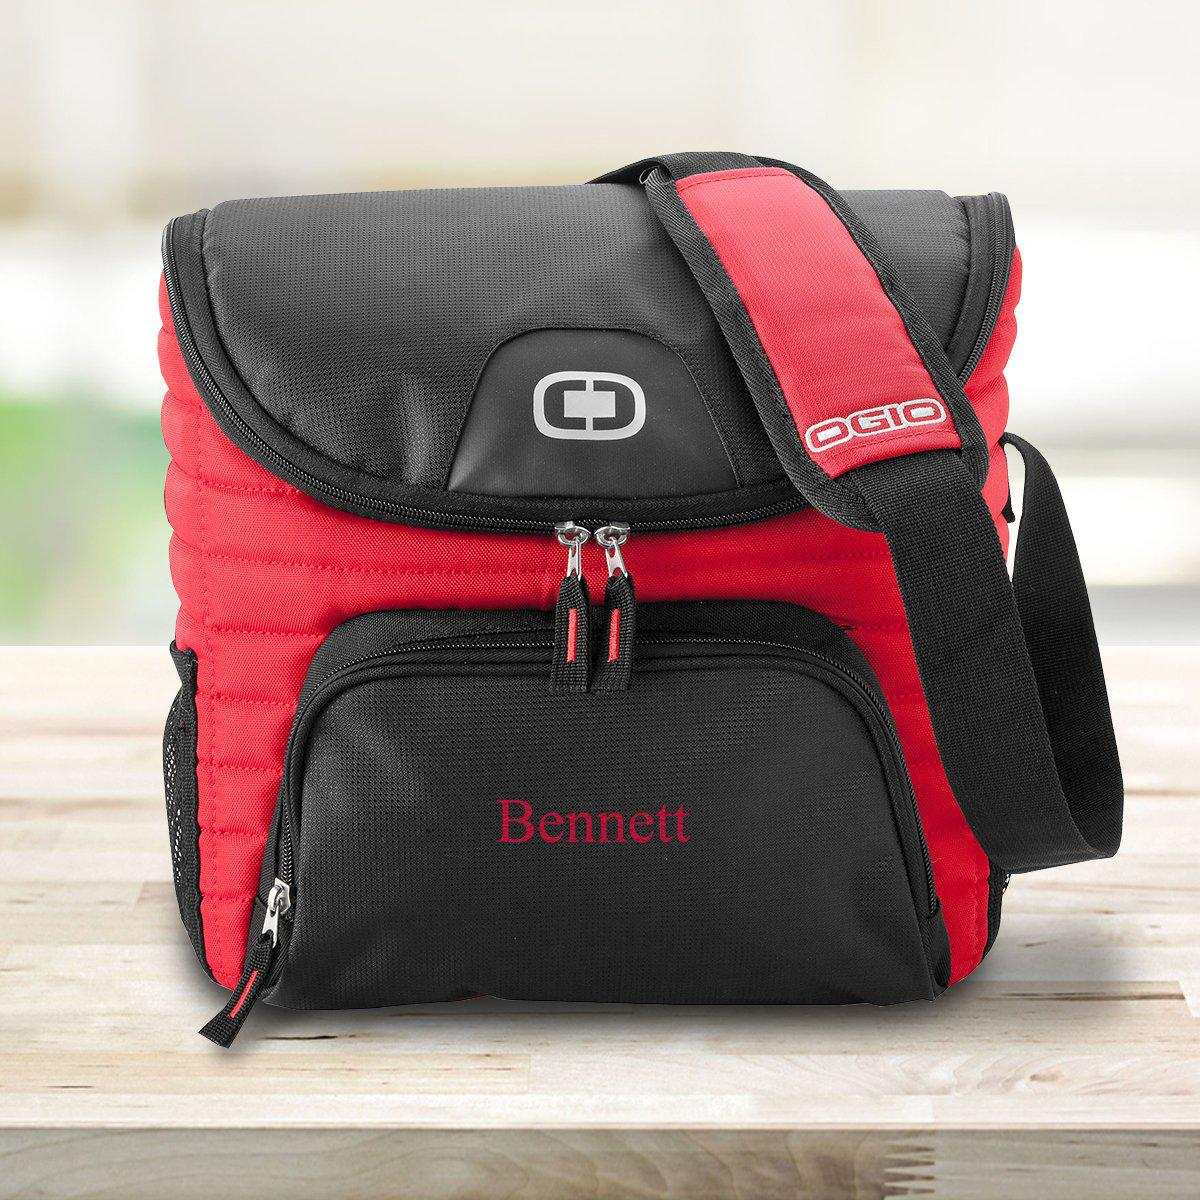 Personalized Ogio Can Cooler Bag